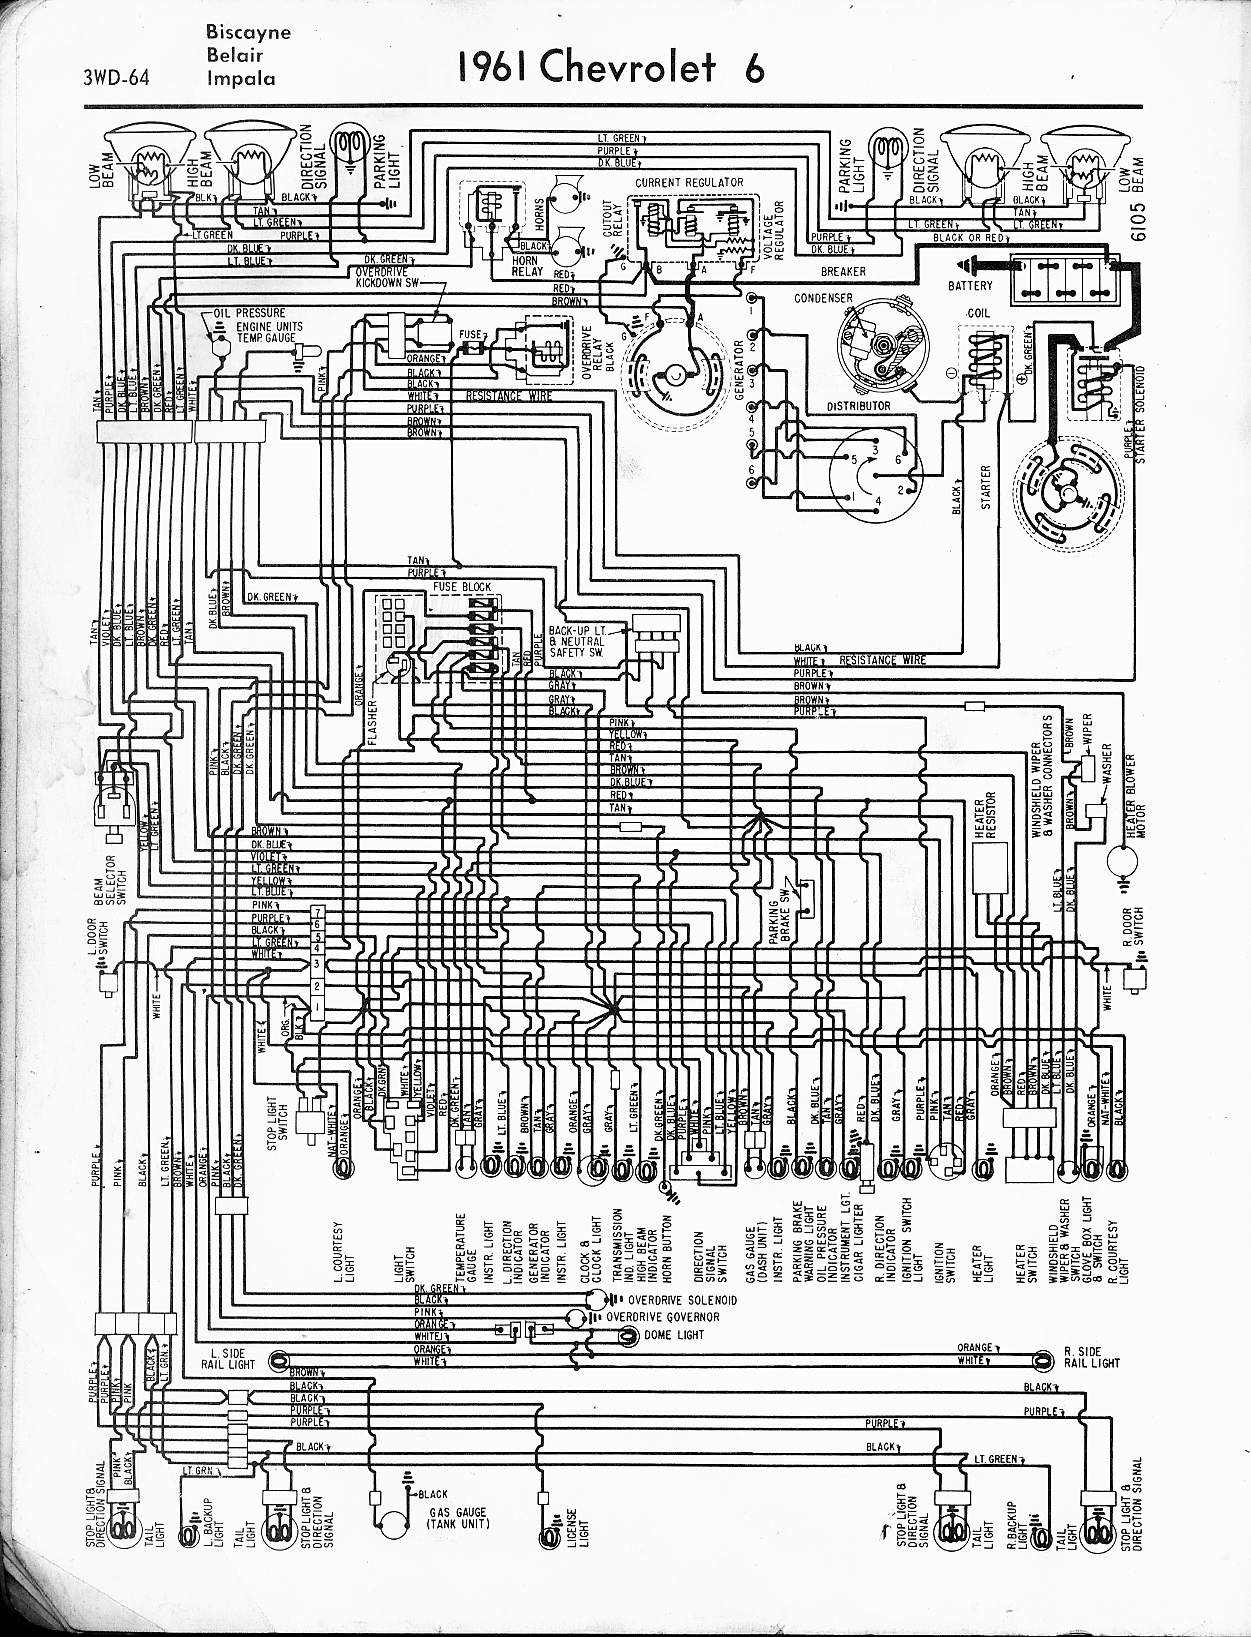 1960 corvette starter wiring diagram detailed schematics diagram rh  mrskindsclass com 68 C10 Fuse Diagram 69